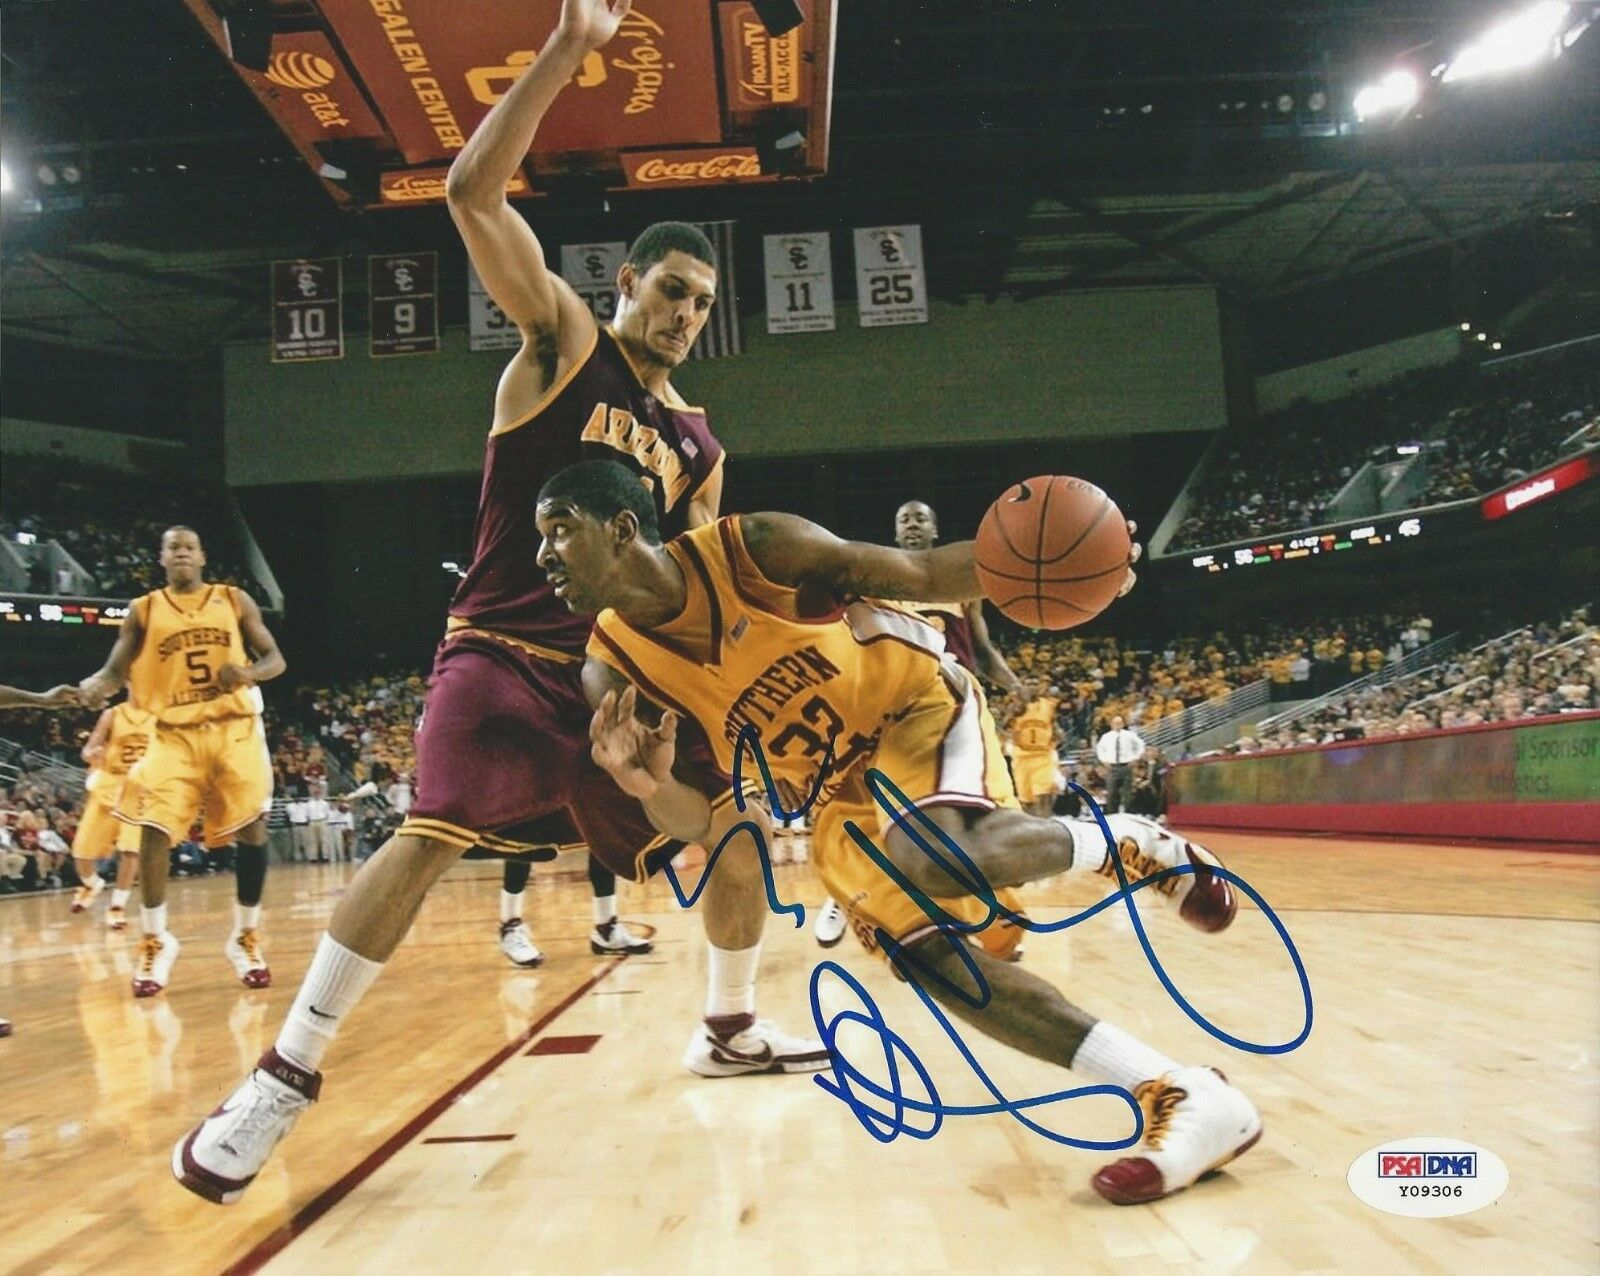 Oj Mayo USC Trojans Signed 8x10 Photo PSA/DNA # Y09306